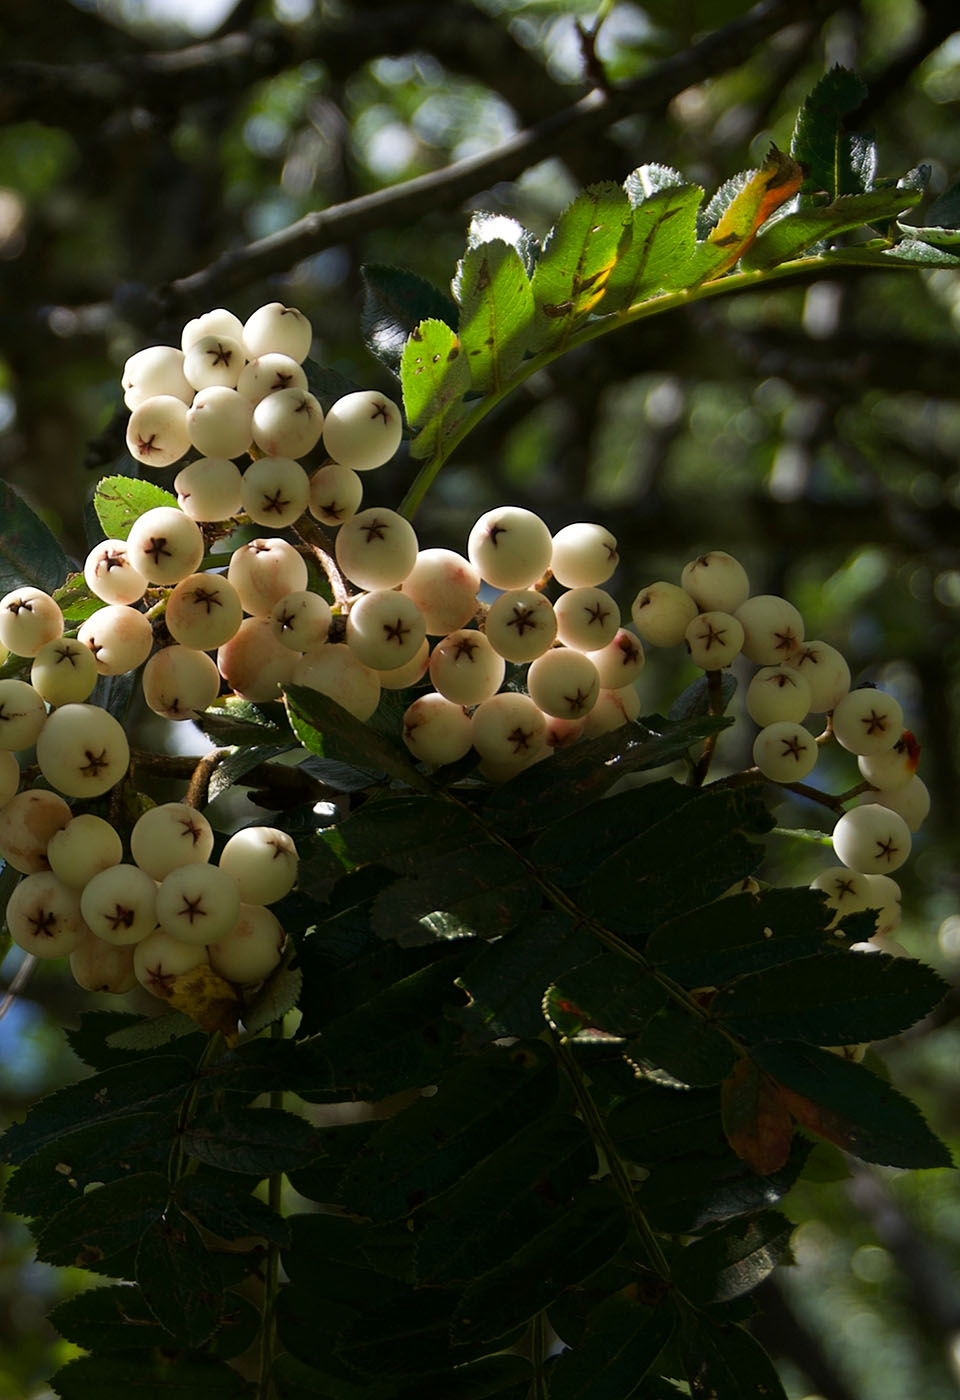 Sorbus sp., white fruits - W/O-9244